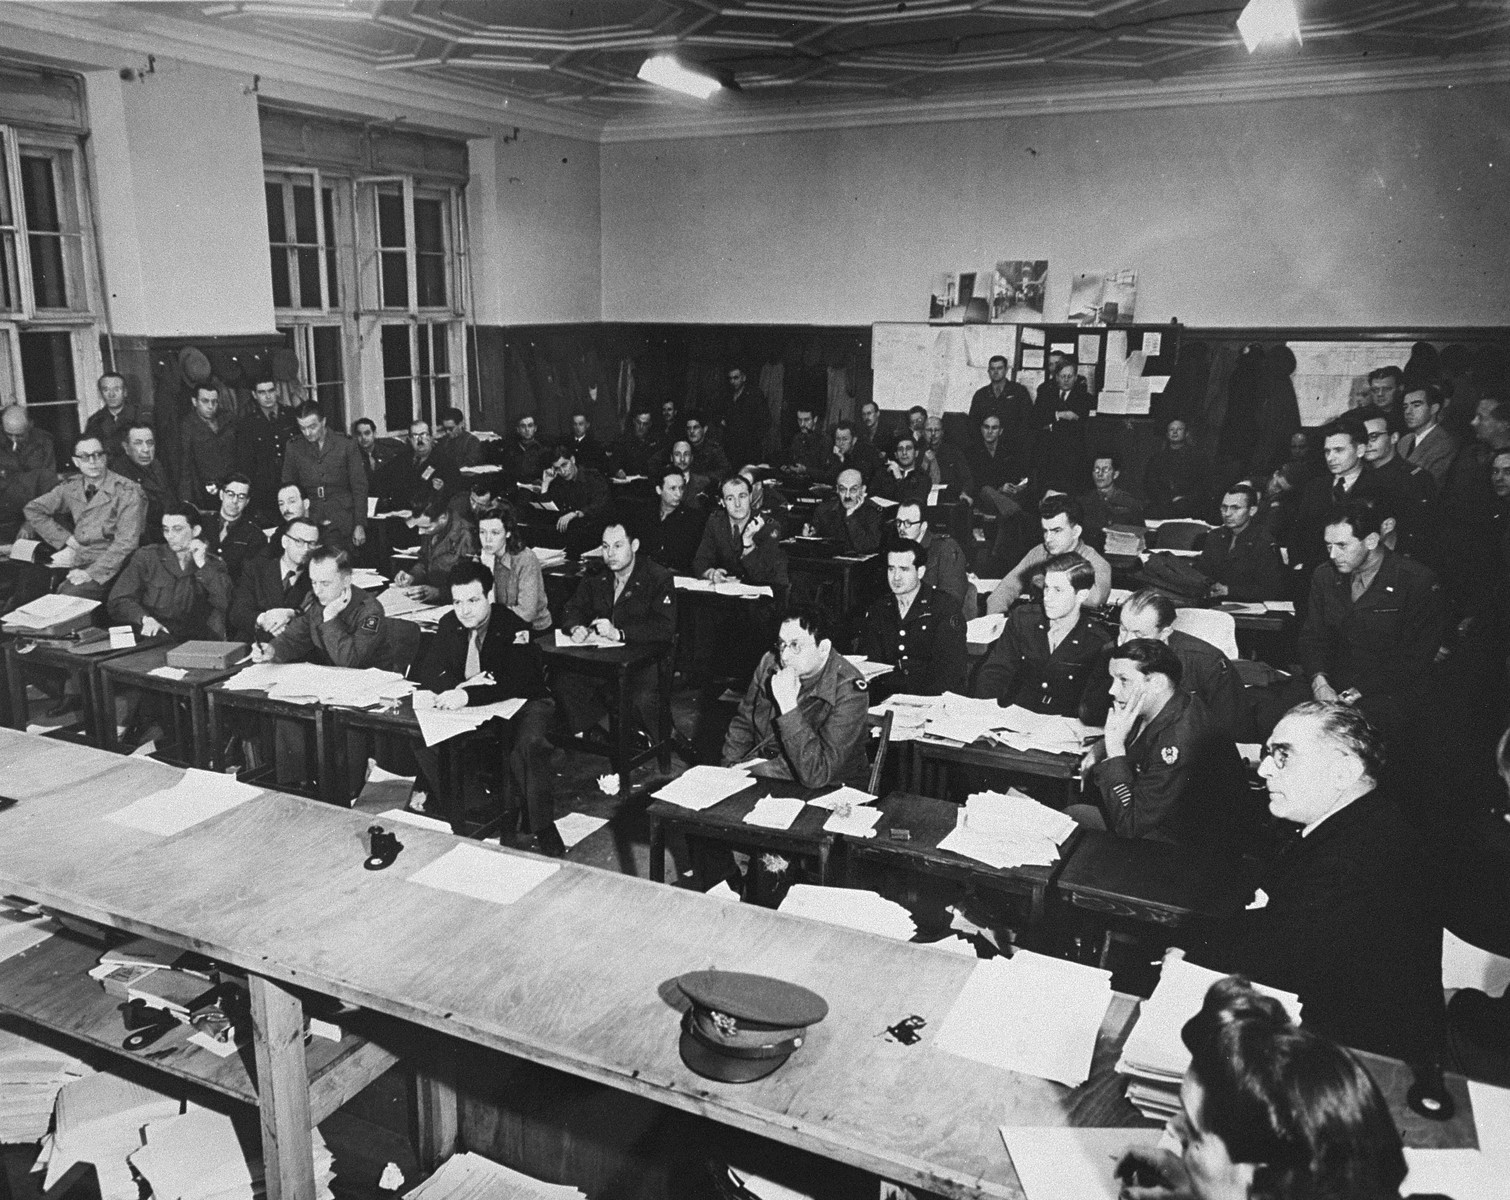 The press room at the International Military Tribunal trial of war criminals at Nuremberg.